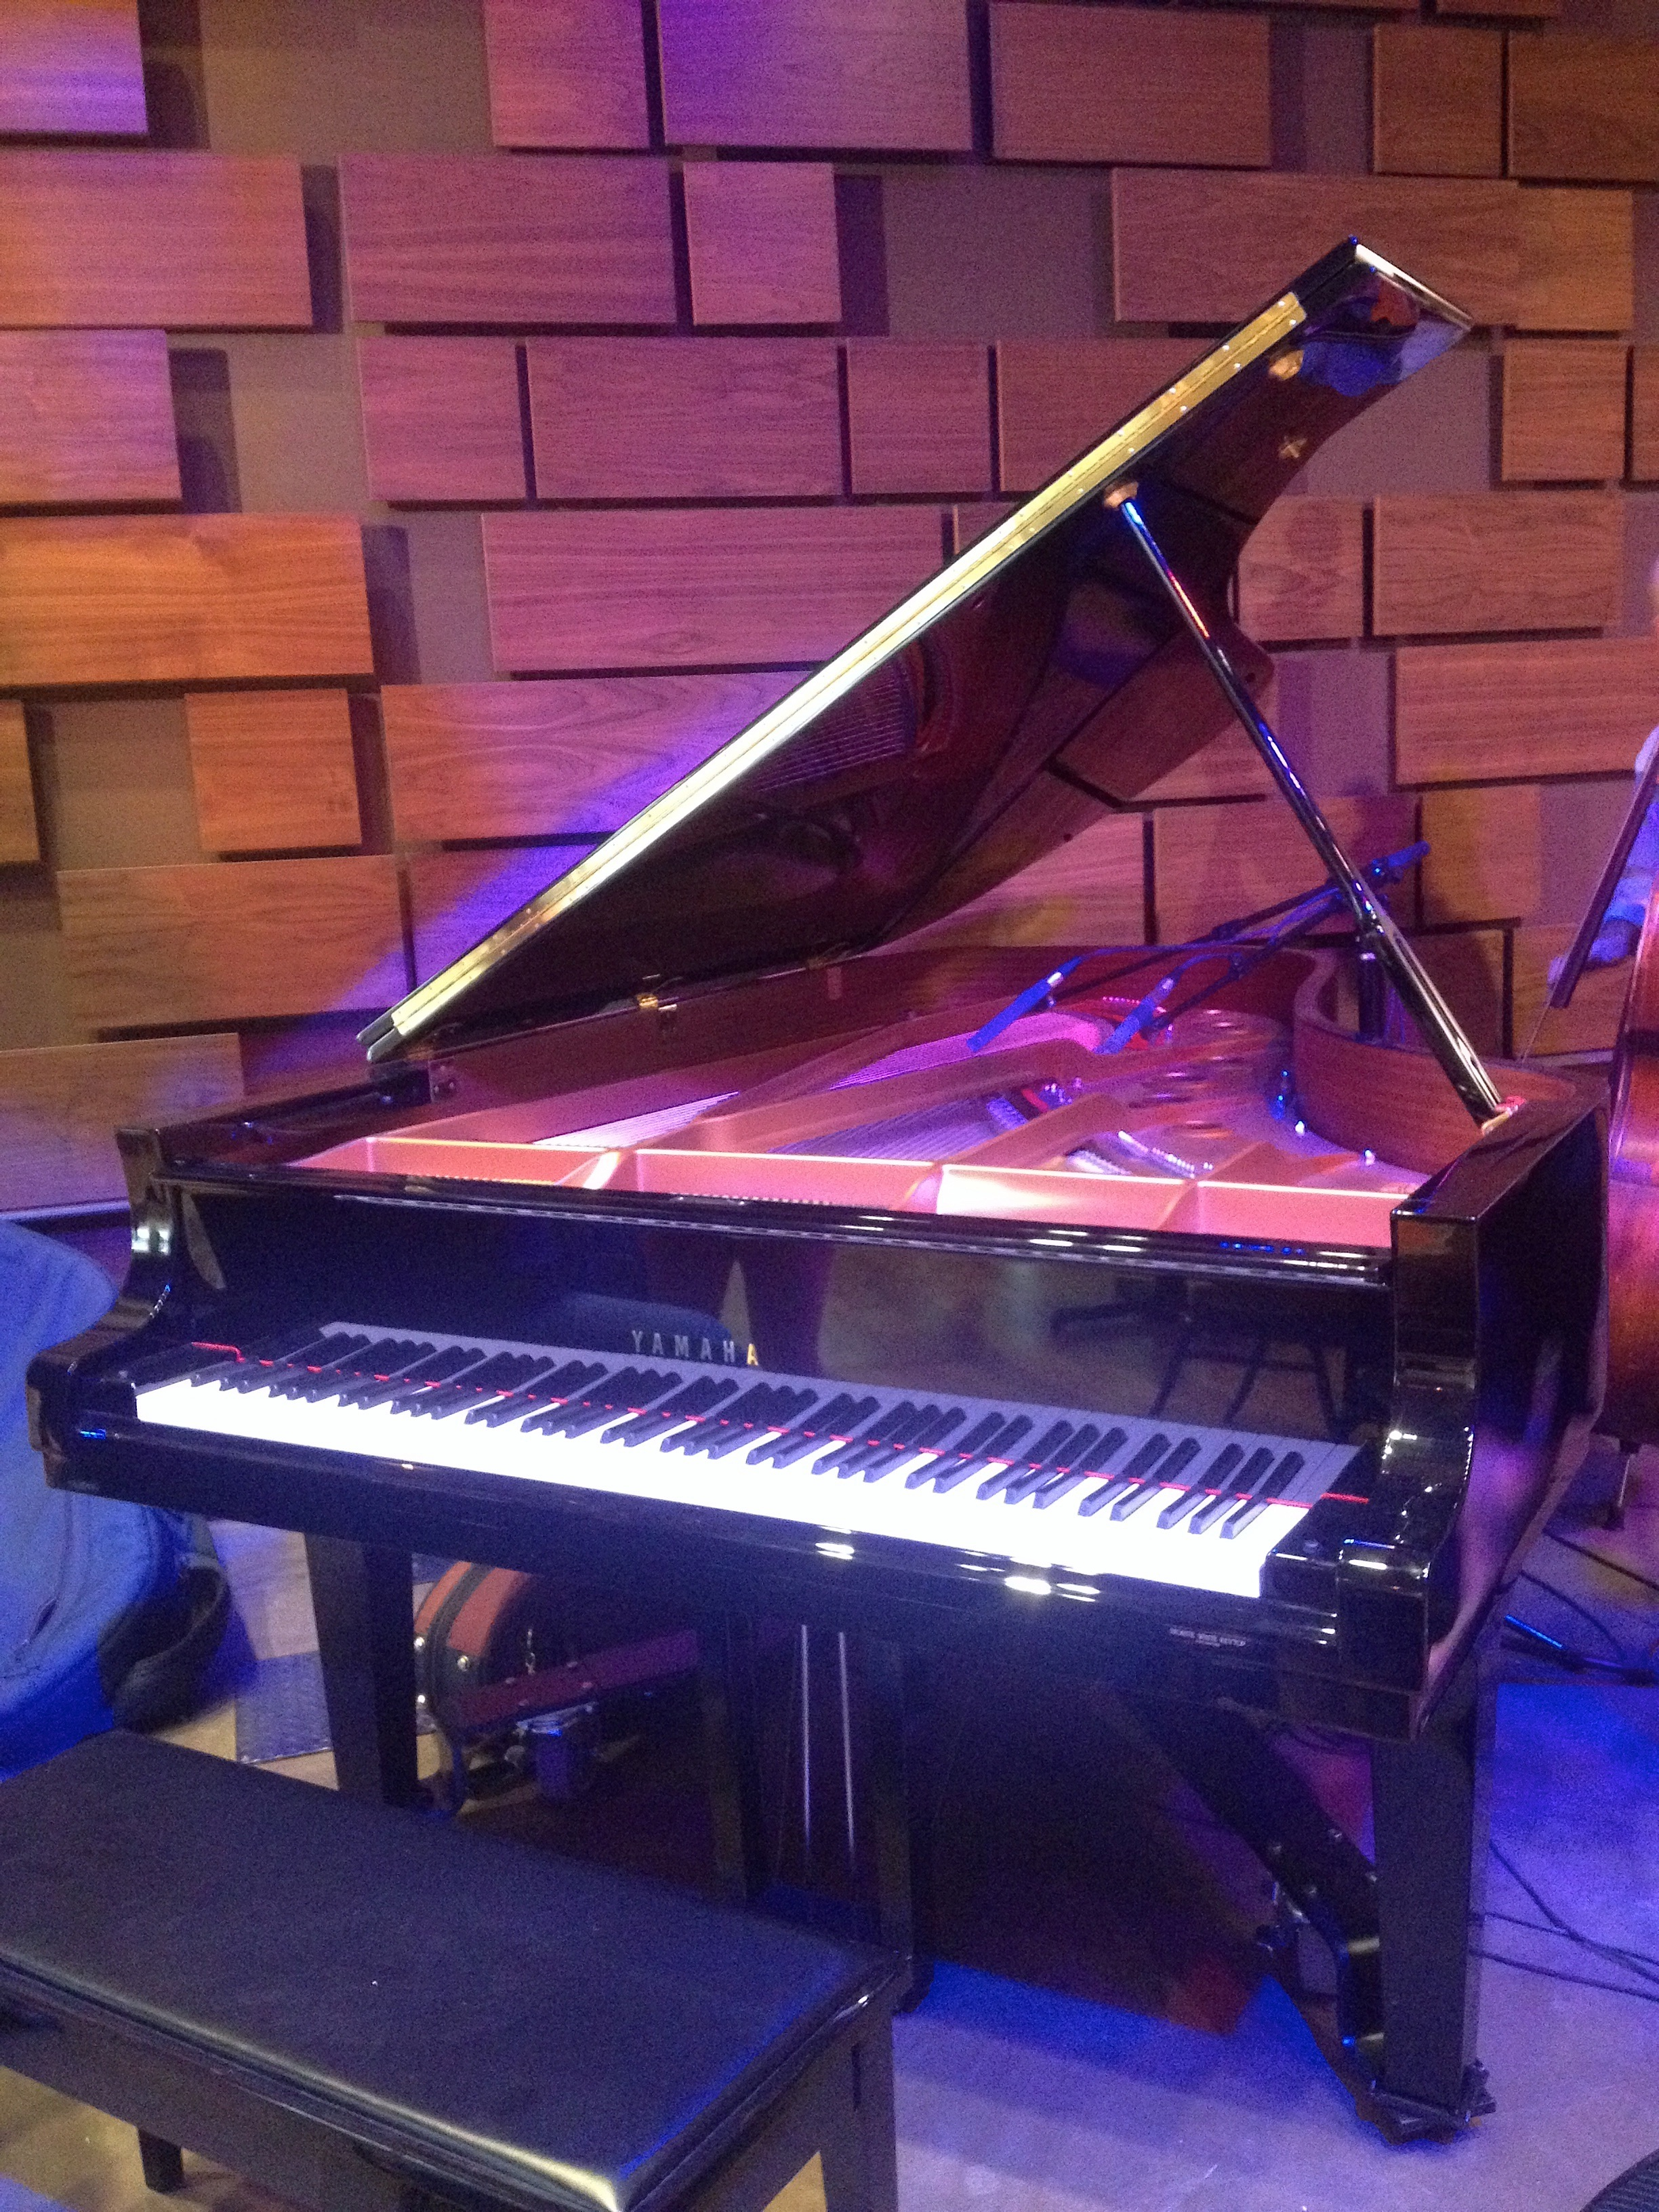 yamaha pianos to play key role in newly expanded jazz st